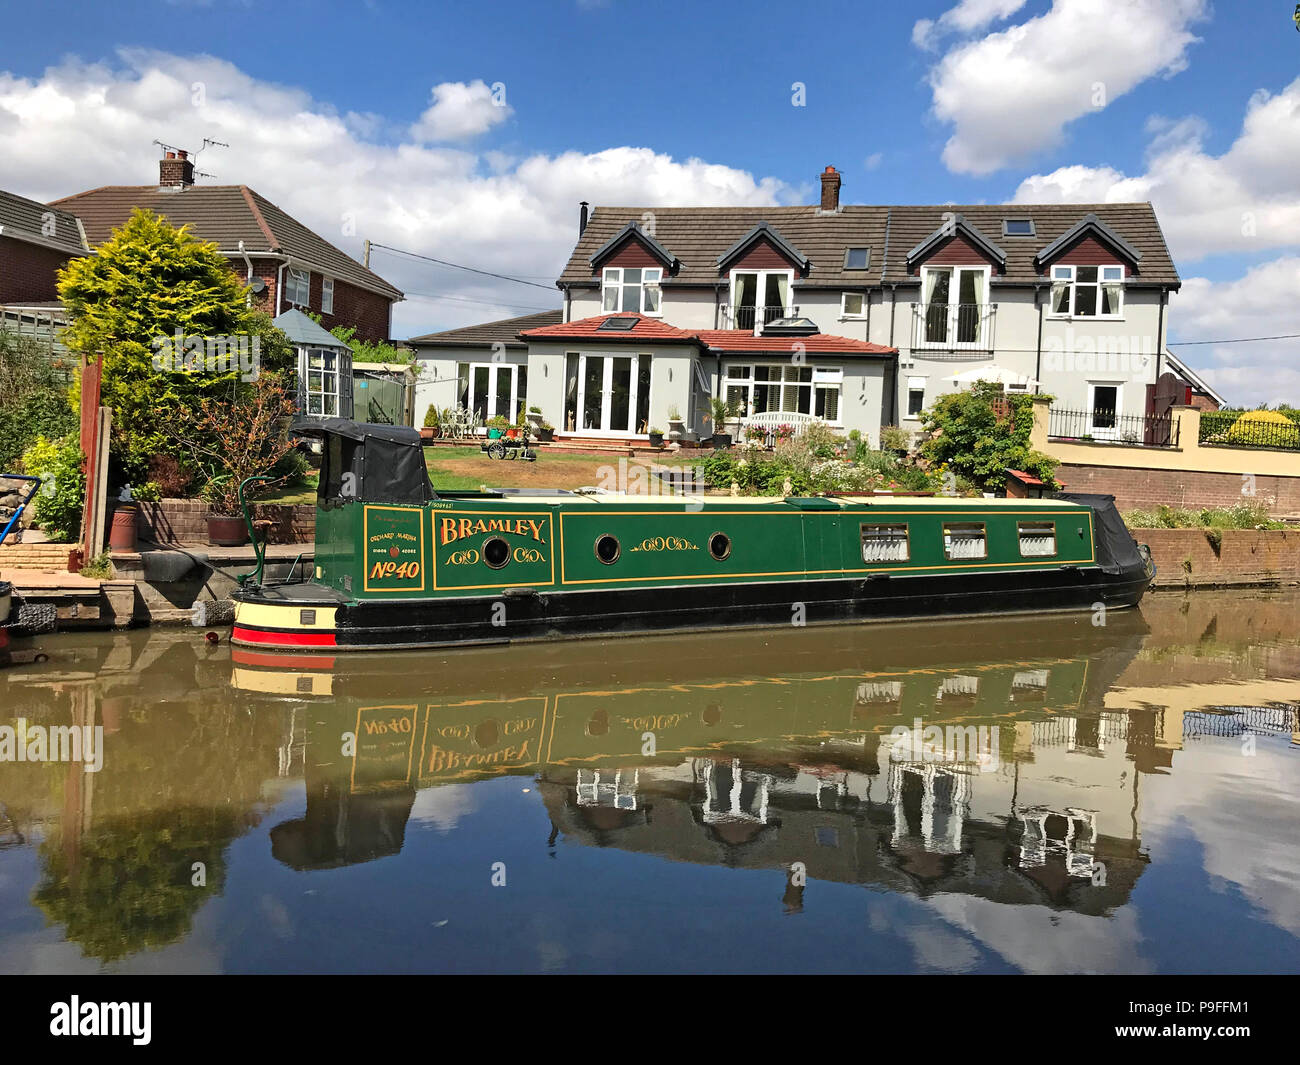 Trent and Mersey Canal, Anderton, Northwich, Cheshire Ring, North West England, UK - Narrowboat, Barge - Stock Image